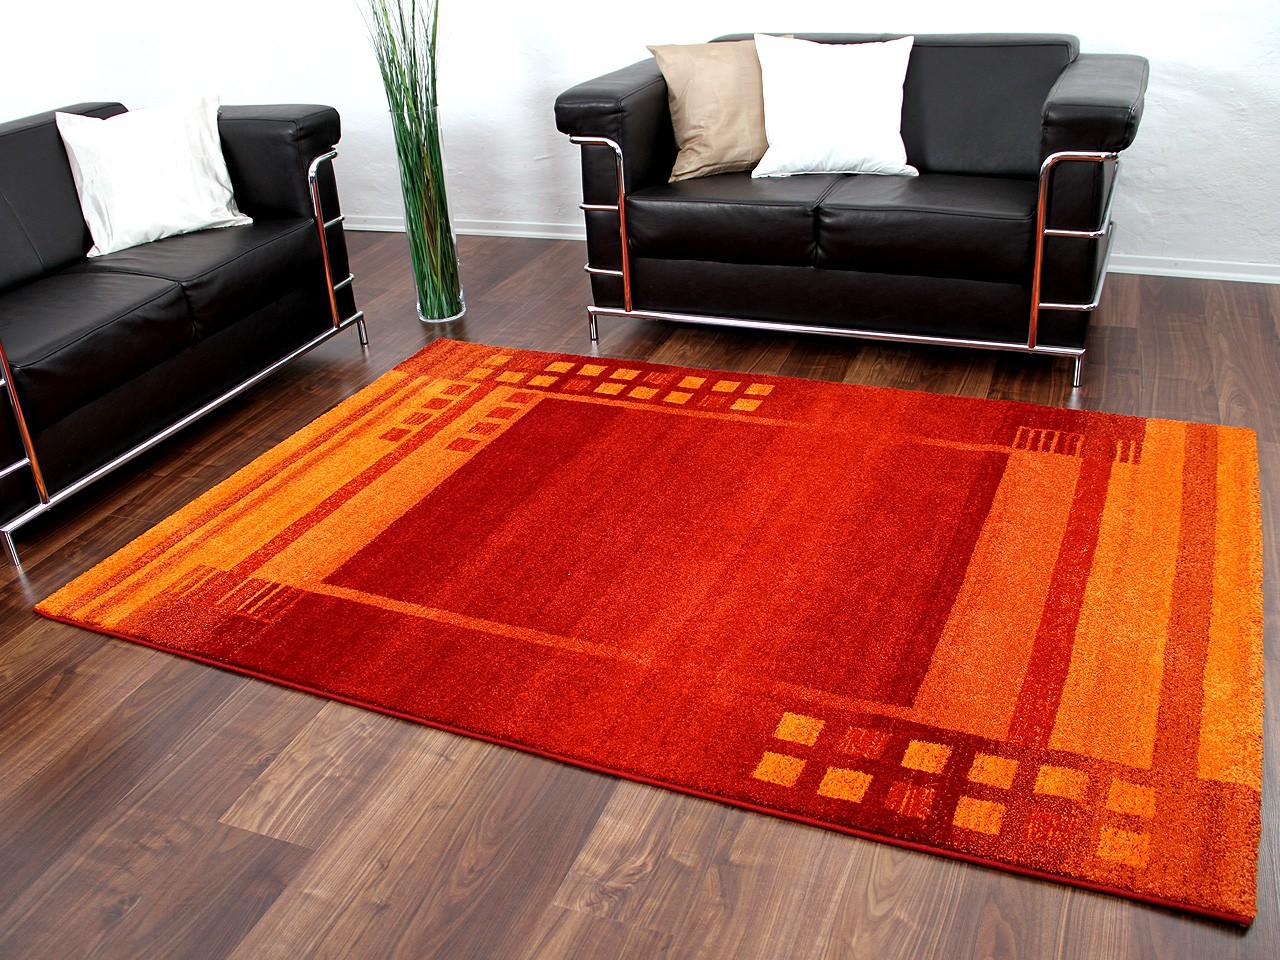 Teppich Orange Designer Teppich Gabbeh Rot Orange Bordüre